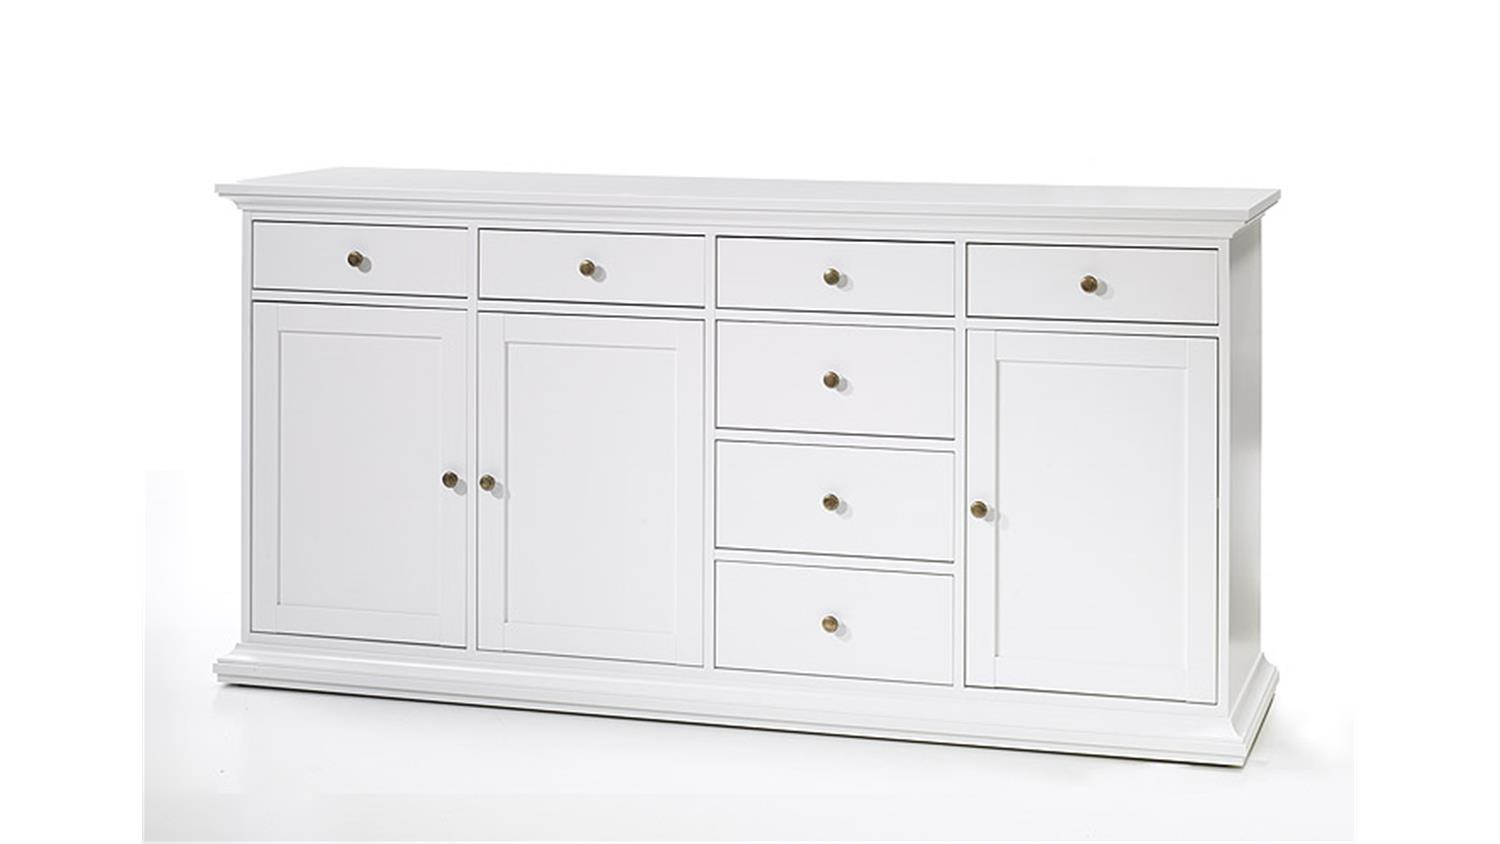 Kommode Landhausstil Sideboard 3 Paris Kommode In Weiß Dekor Landhausstil 3 Türig